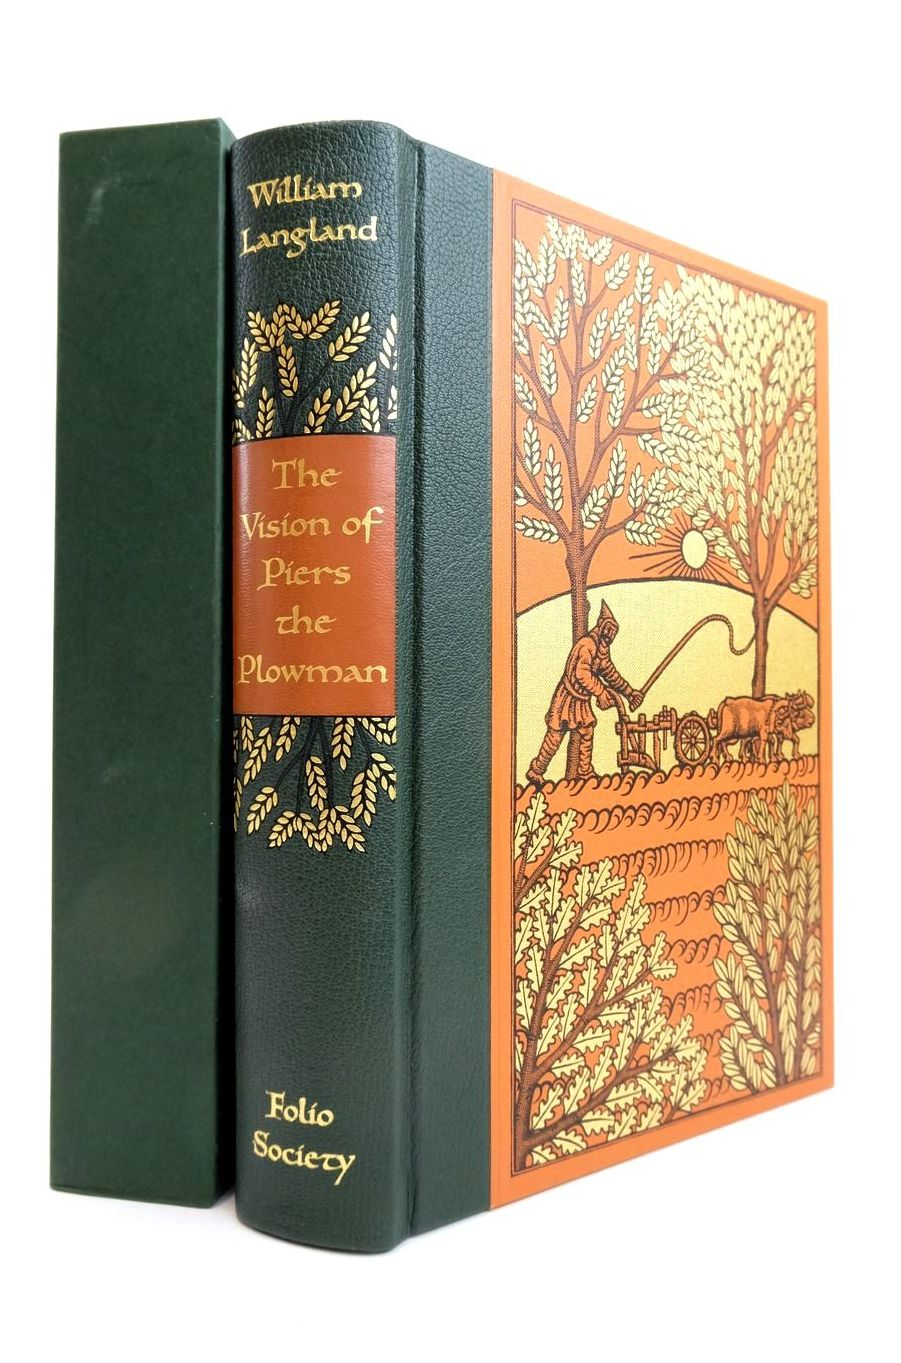 Photo of THE VISION OF PIERS THE PLOWMAN written by Langland, William O'Donoghue, Bernard illustrated by Brockway, Harry published by Folio Society (STOCK CODE: 1821483)  for sale by Stella & Rose's Books